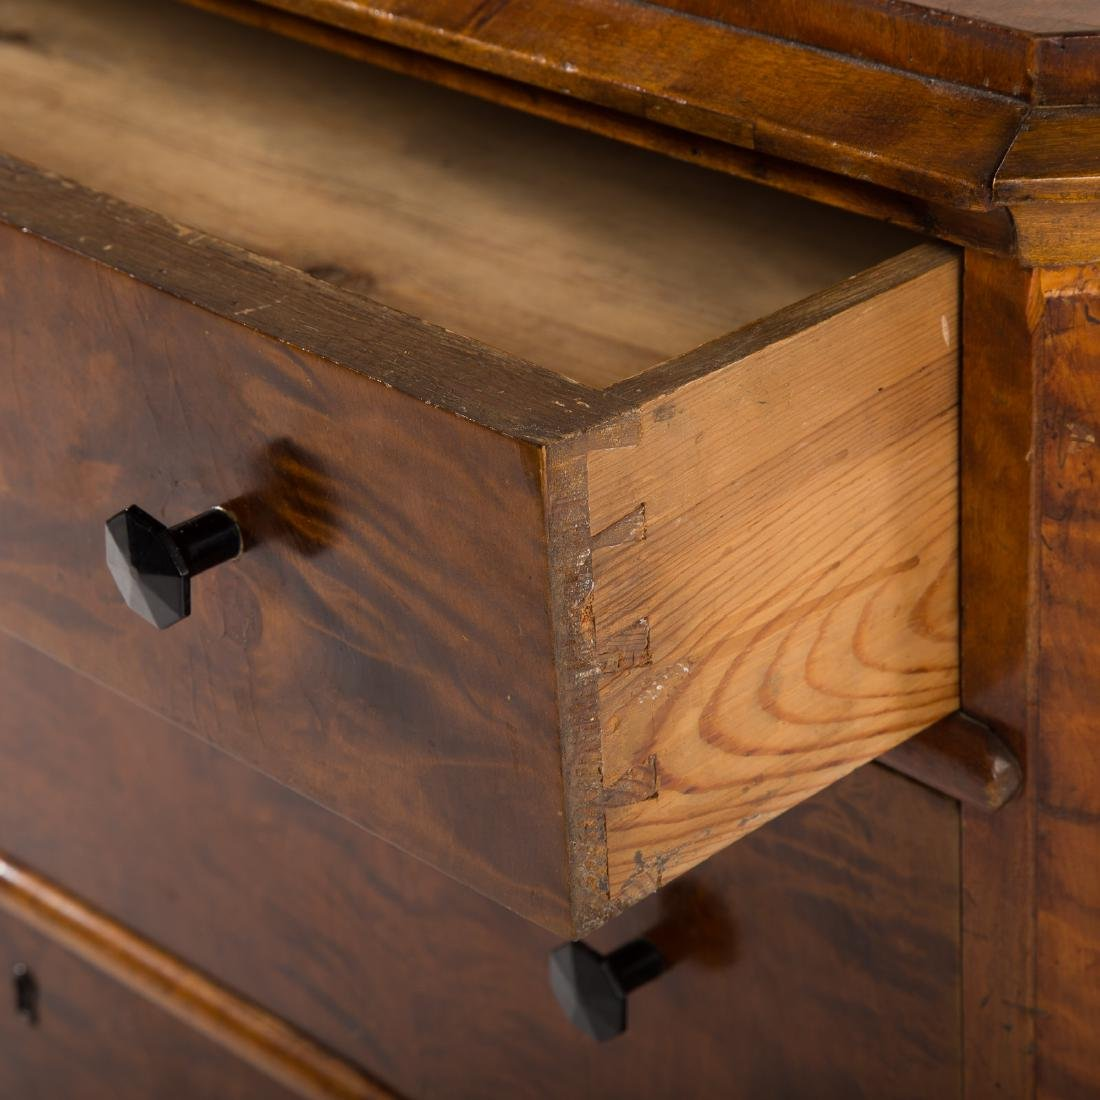 Biedermeier walnut veneer commode - 5